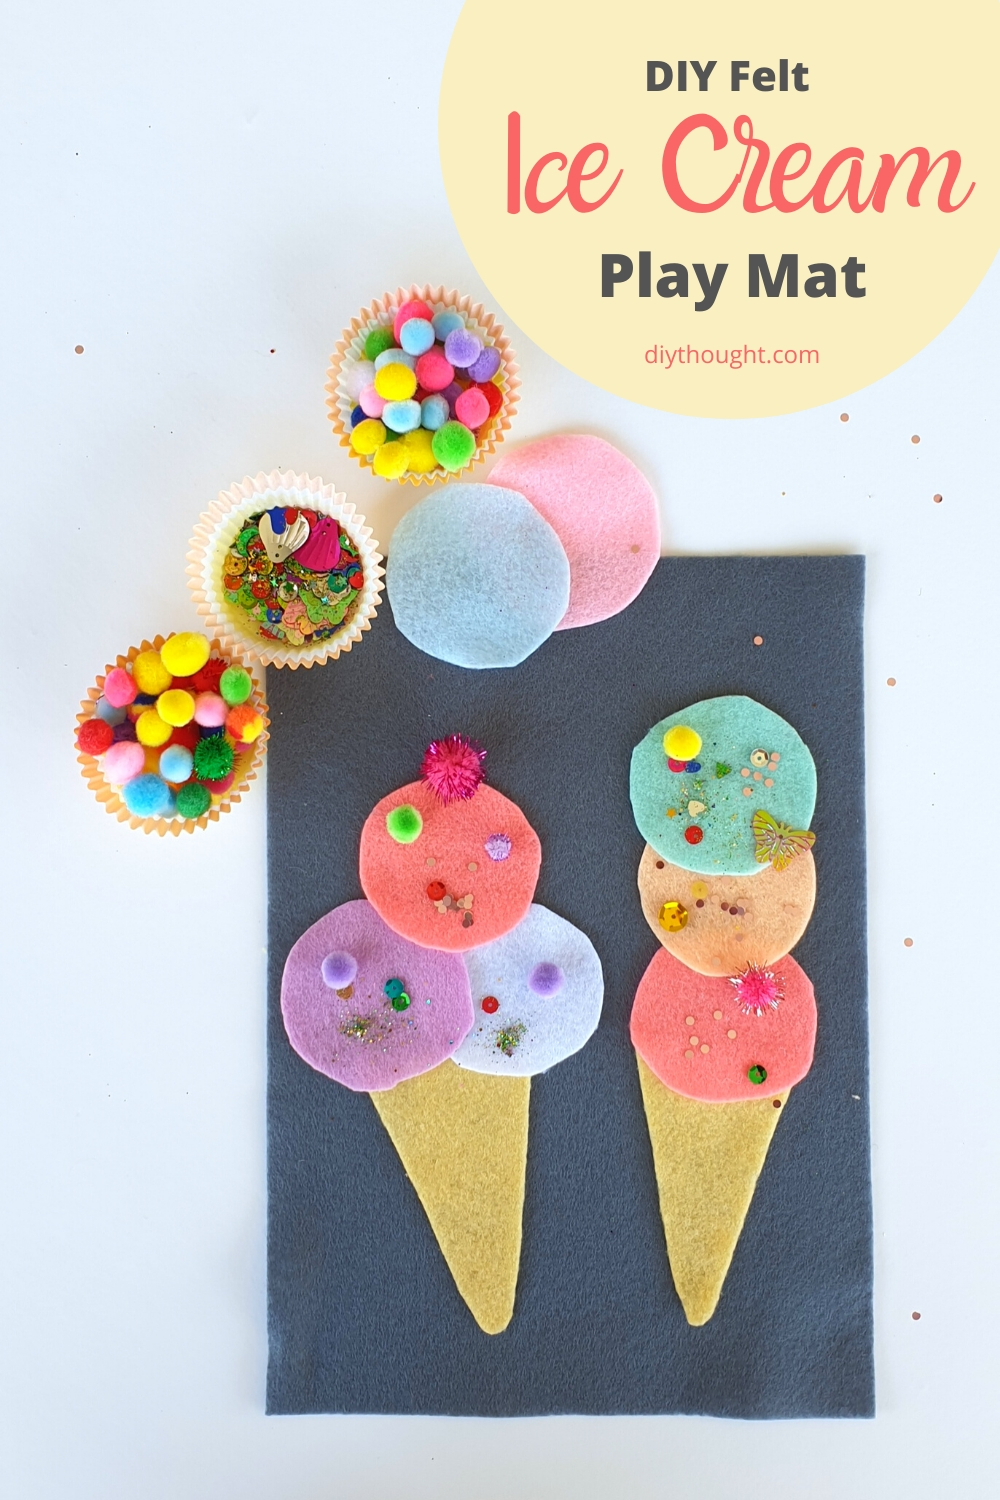 DIY Felt ice cream play mat